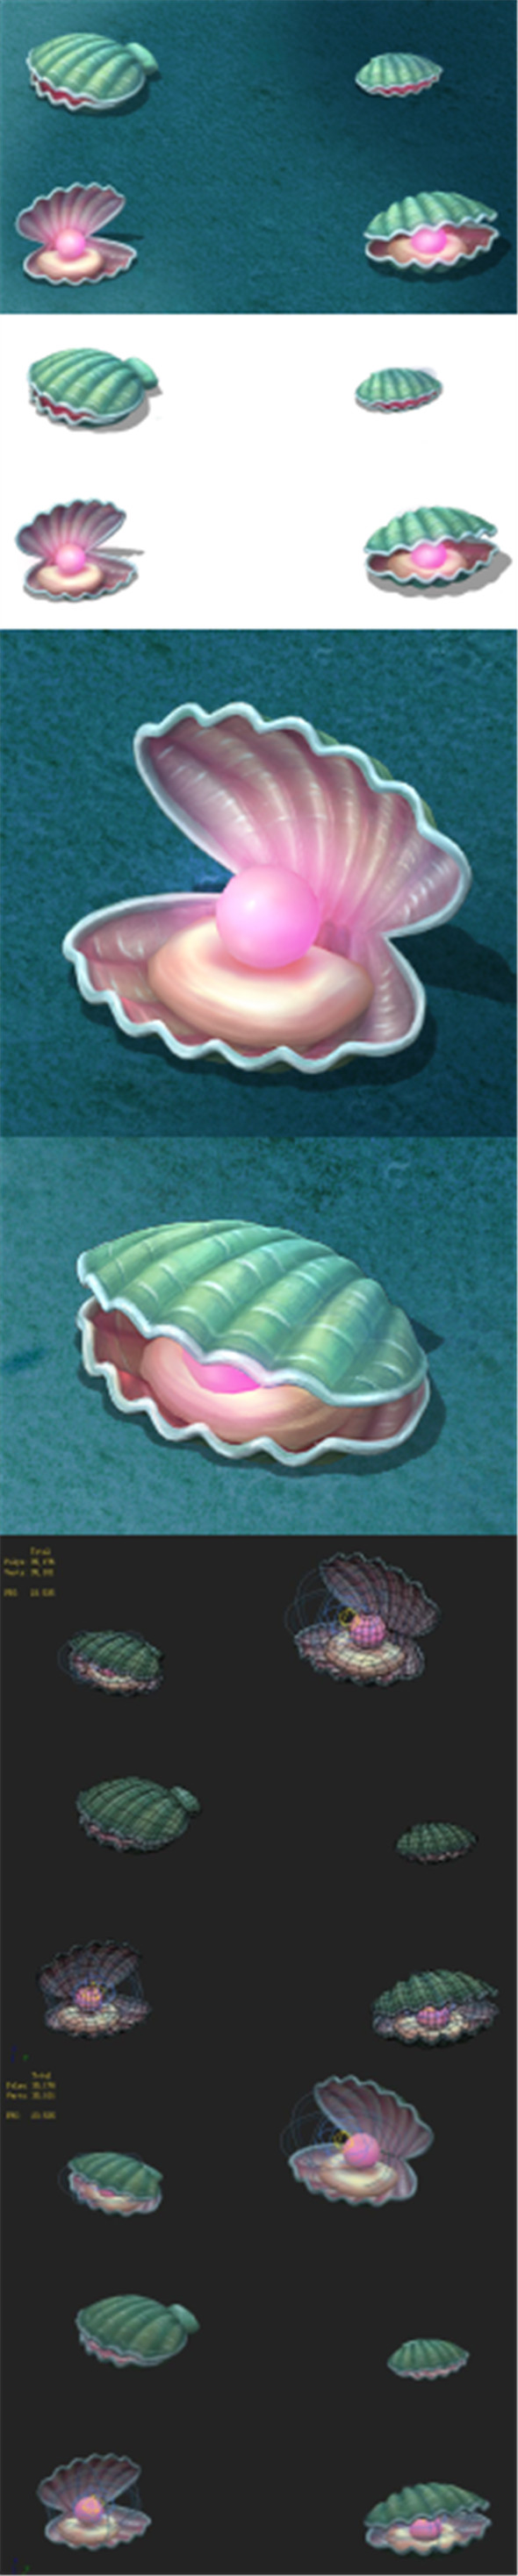 Submarine cartoon world - watermelon pearl shells - 3DOcean Item for Sale